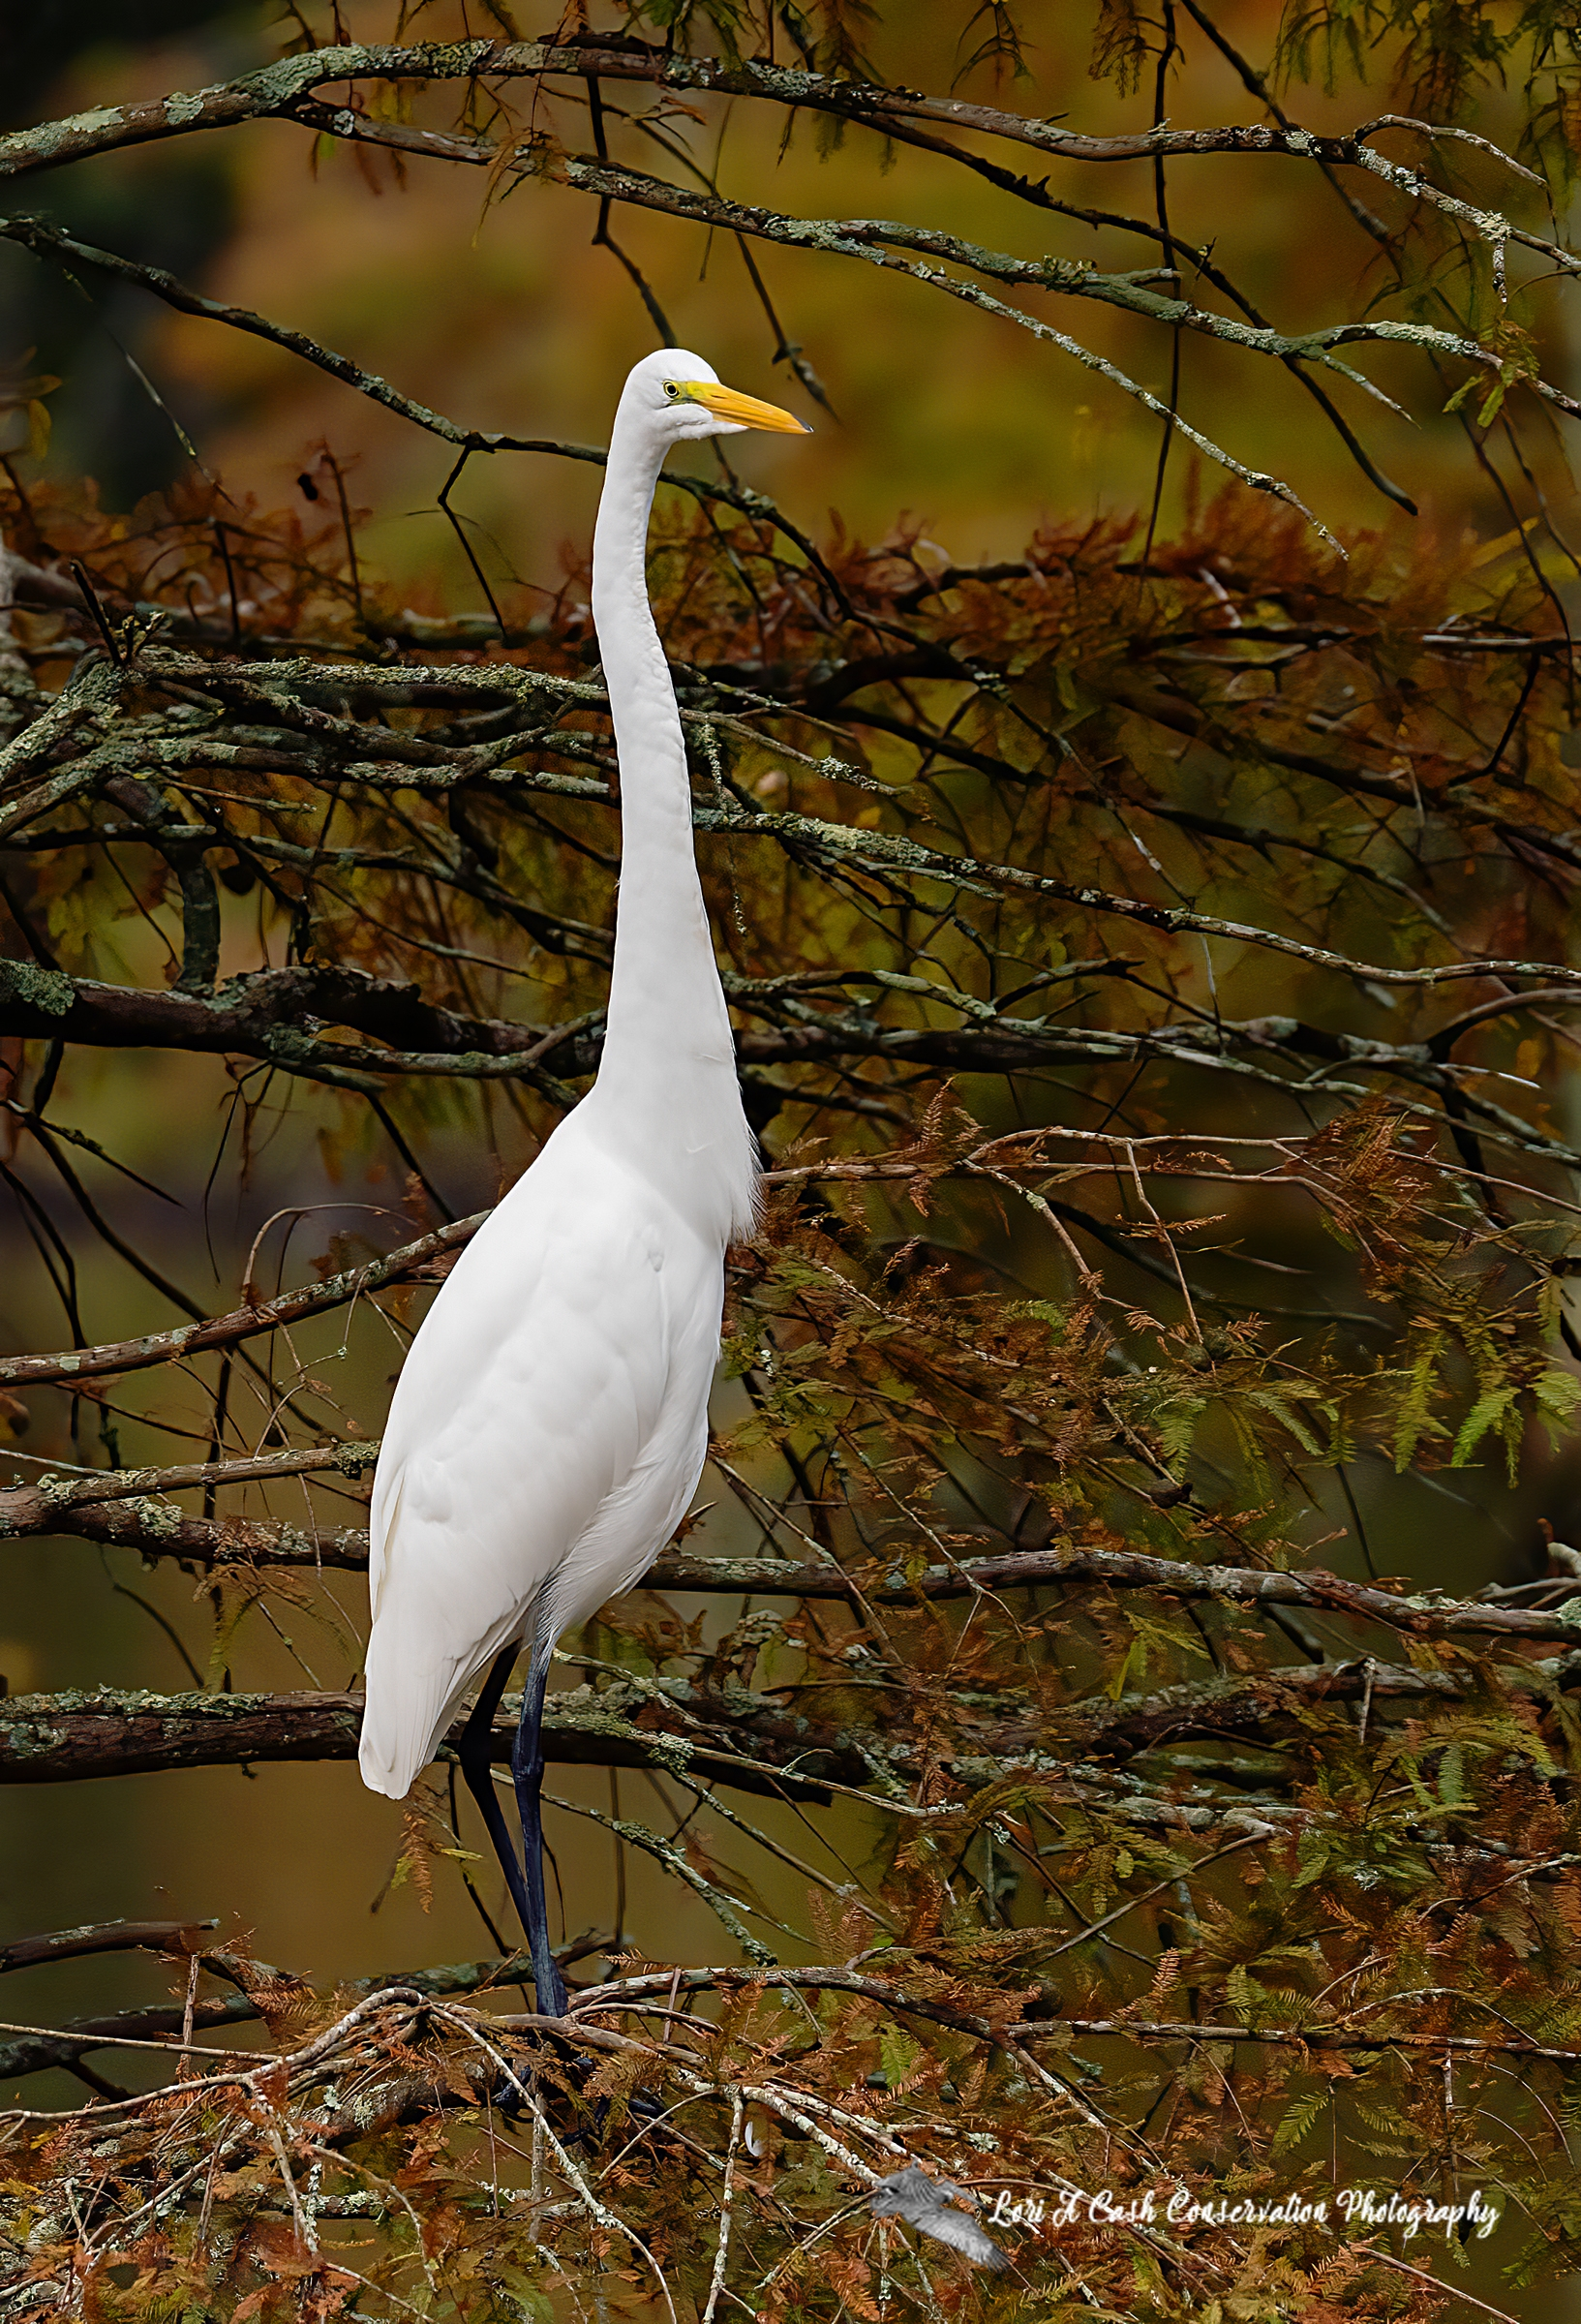 Great white egret standing tall in the trees with fall colors at Stumpy Lake Natural Area in Virginia Beach, Virginia.